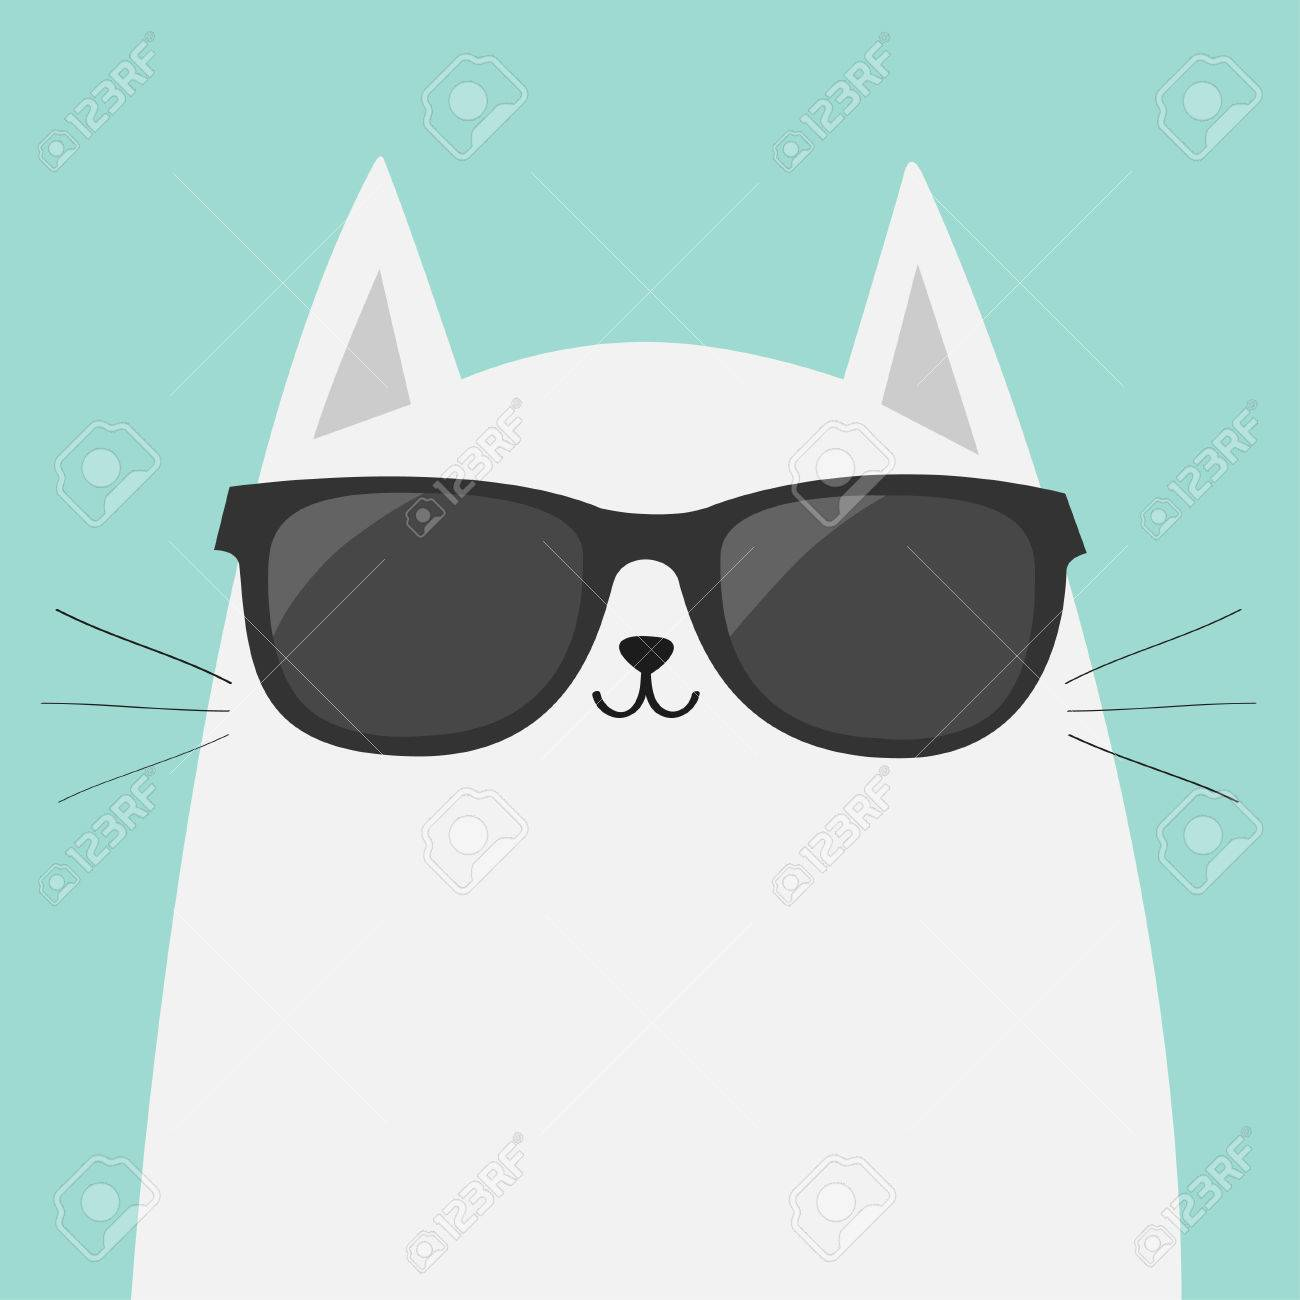 28df91e62e1 White cat wearing sunglasses eyeglasses. Black lenses. Cute cartoon funny  character. Kitten in